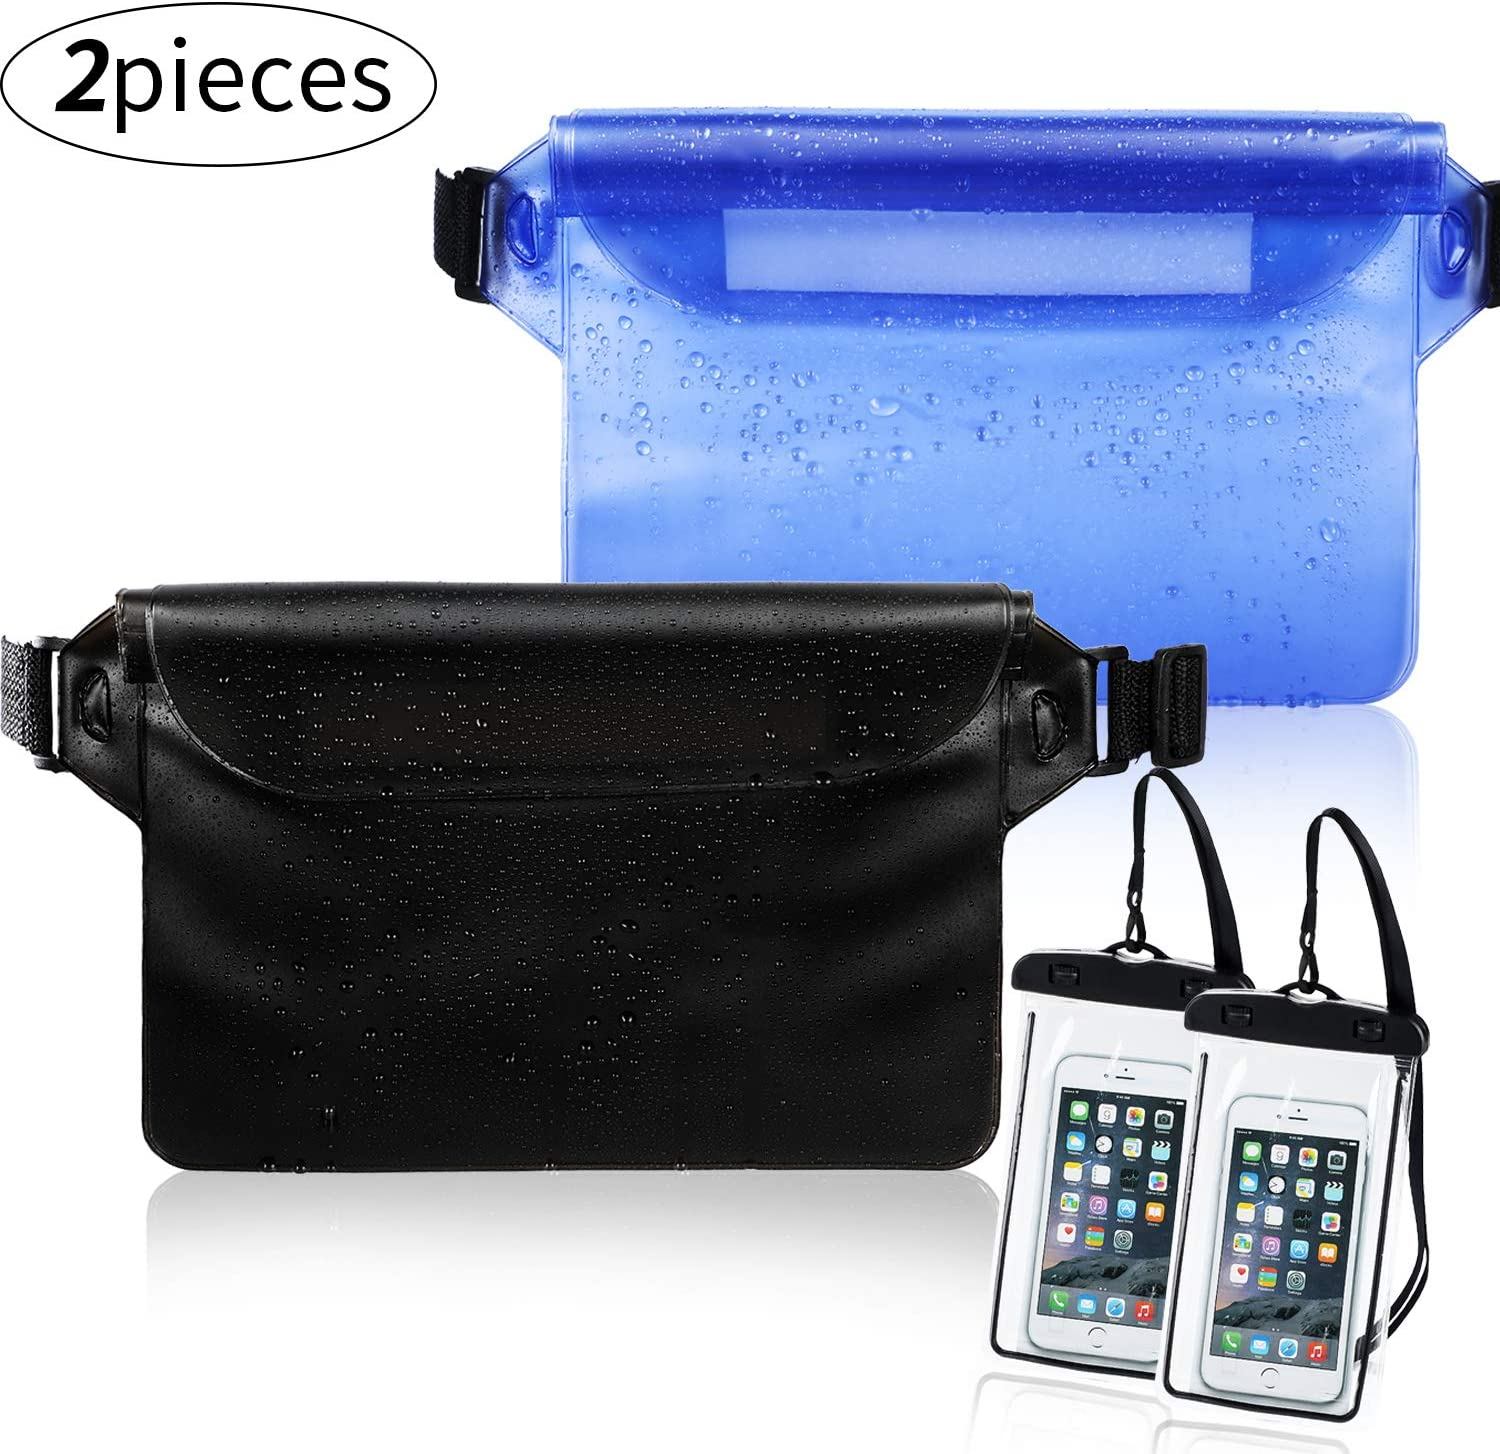 Weewooday 2 Pieces Waterproof Waist Pouch and 2 Piece Black Waterproof Phone Case Dry Bag for Boating Swimming Kayaking Beach Pool Water Parks, Keeping Phone Wallet Safe and Dry (Color Set 1)